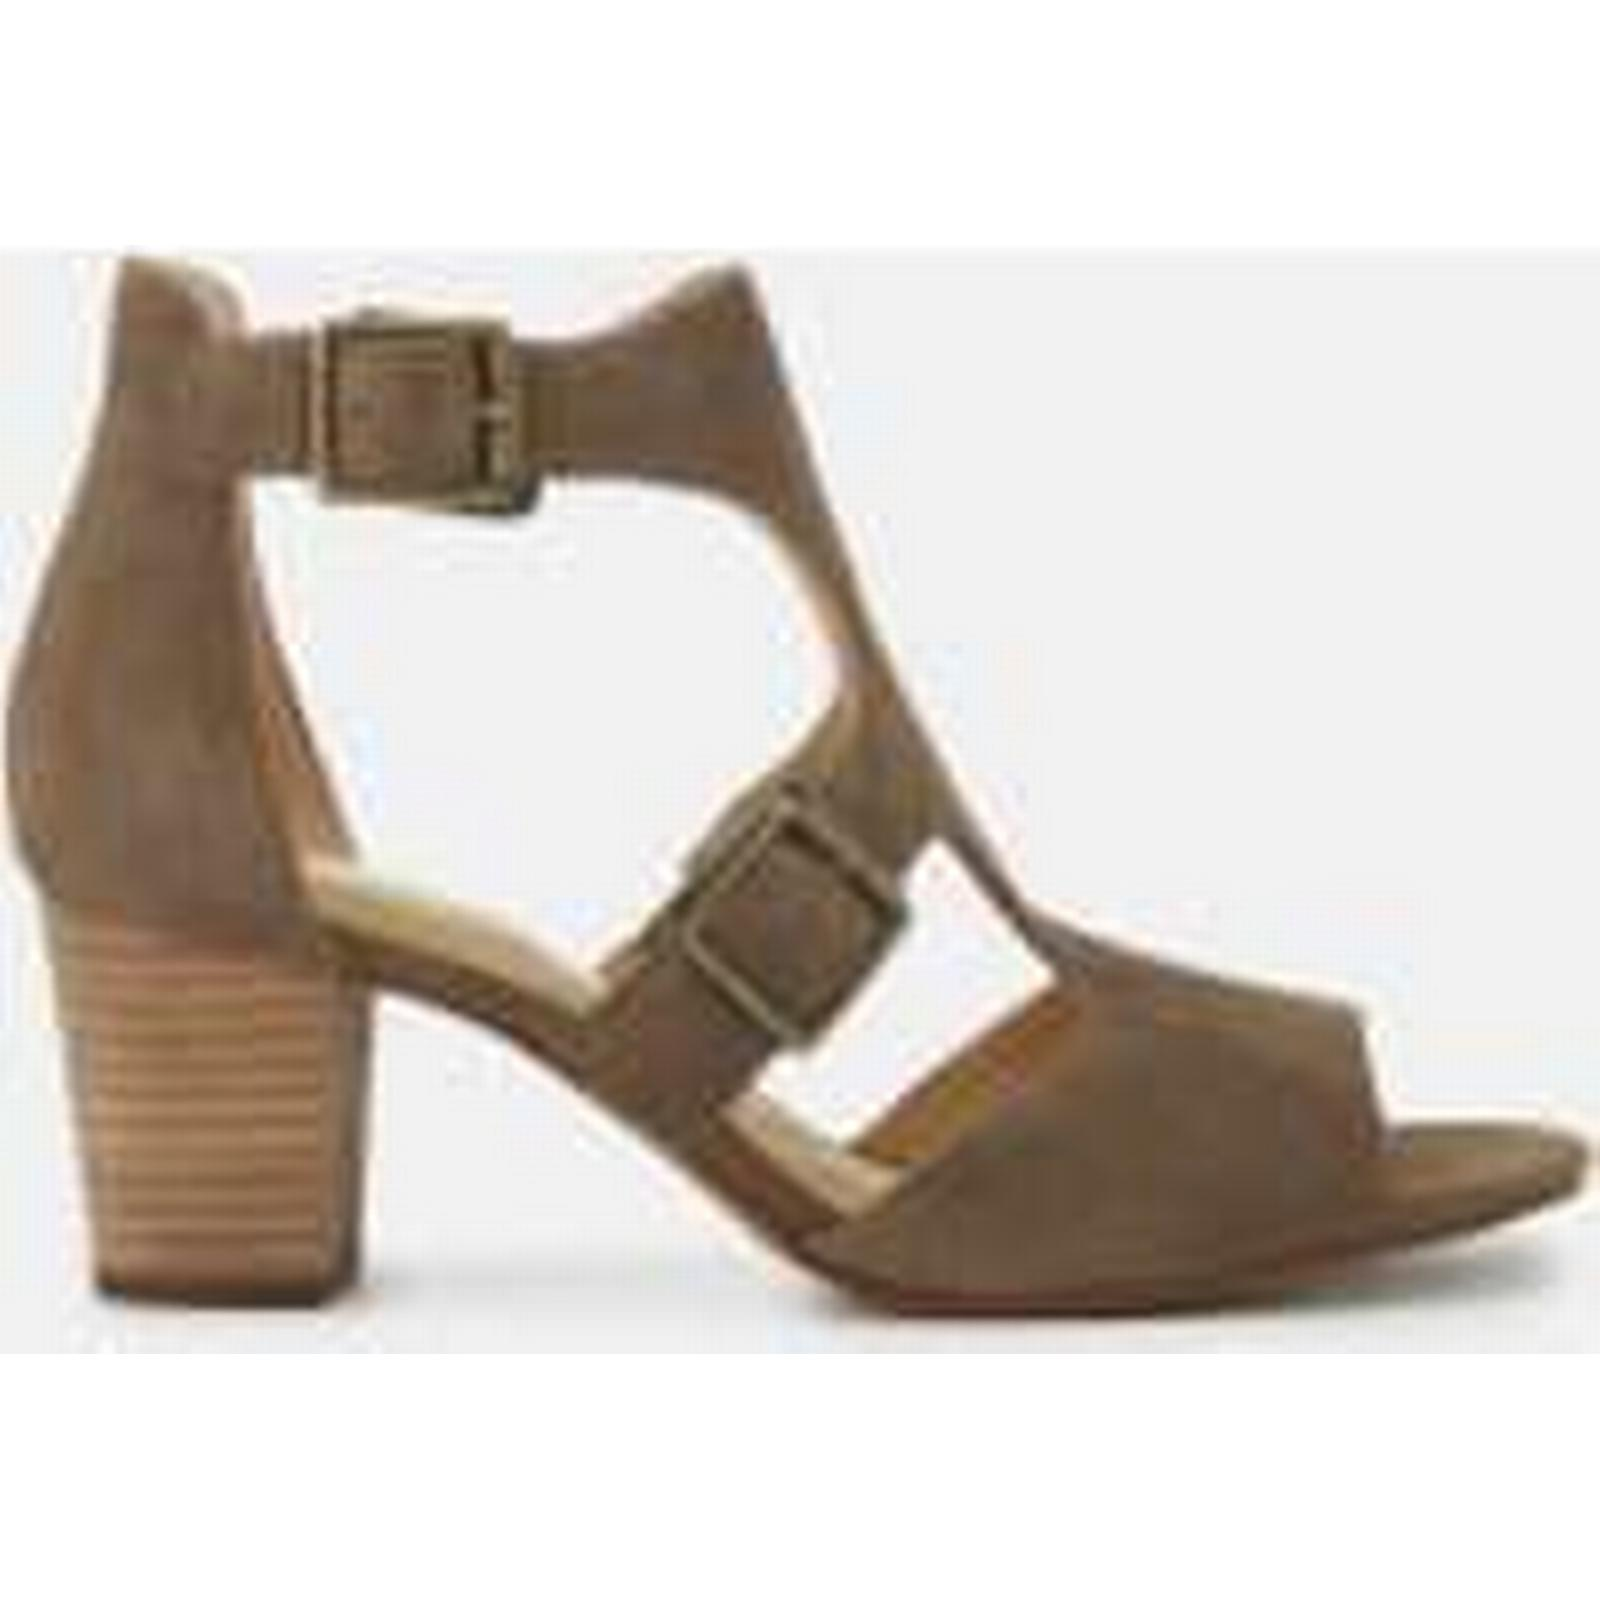 Clarks Women's Deloria Kay Suede Block Heeled Sandals - Olive Green - UK 4 - Green Olive 1ce307